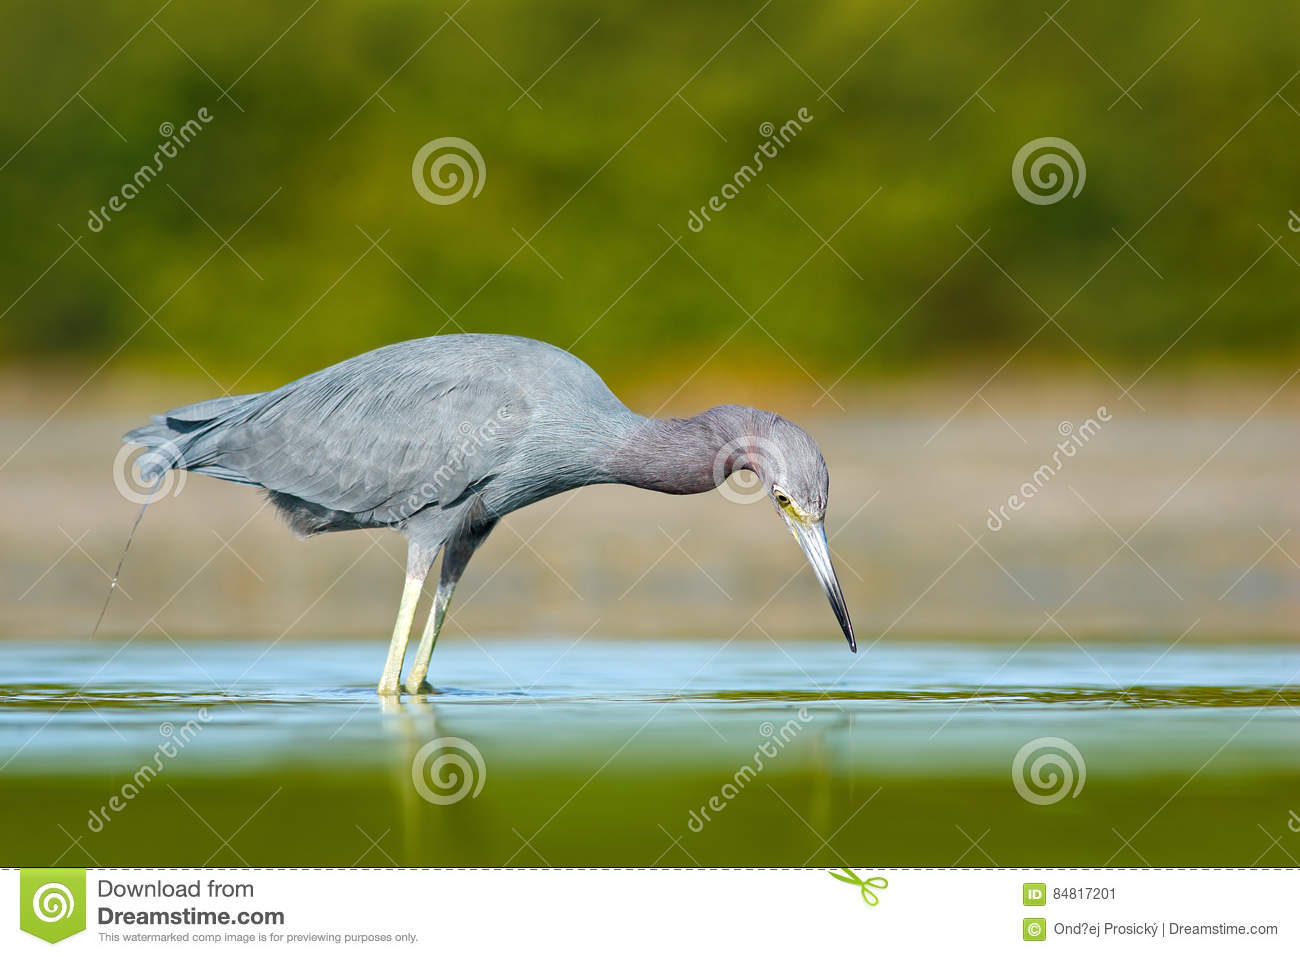 Bird hunting in the water. Little Blue Heron, Egretta caerulea, in the water, Mexico. Bird in the beautiful green river water. Wil